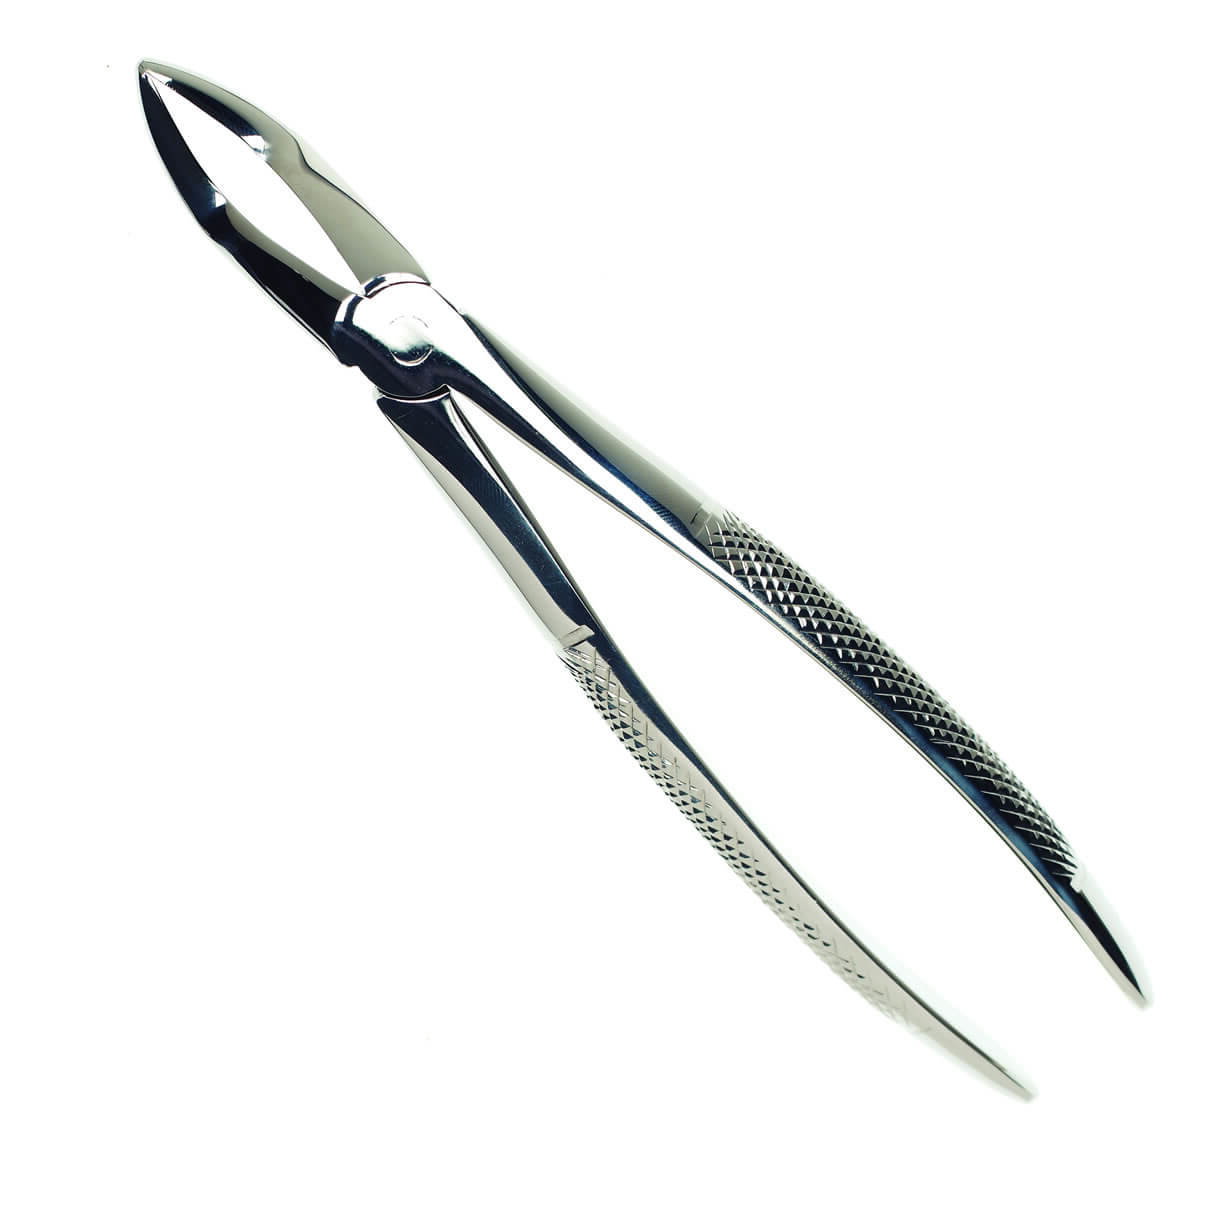 Extraction Forceps UK/European